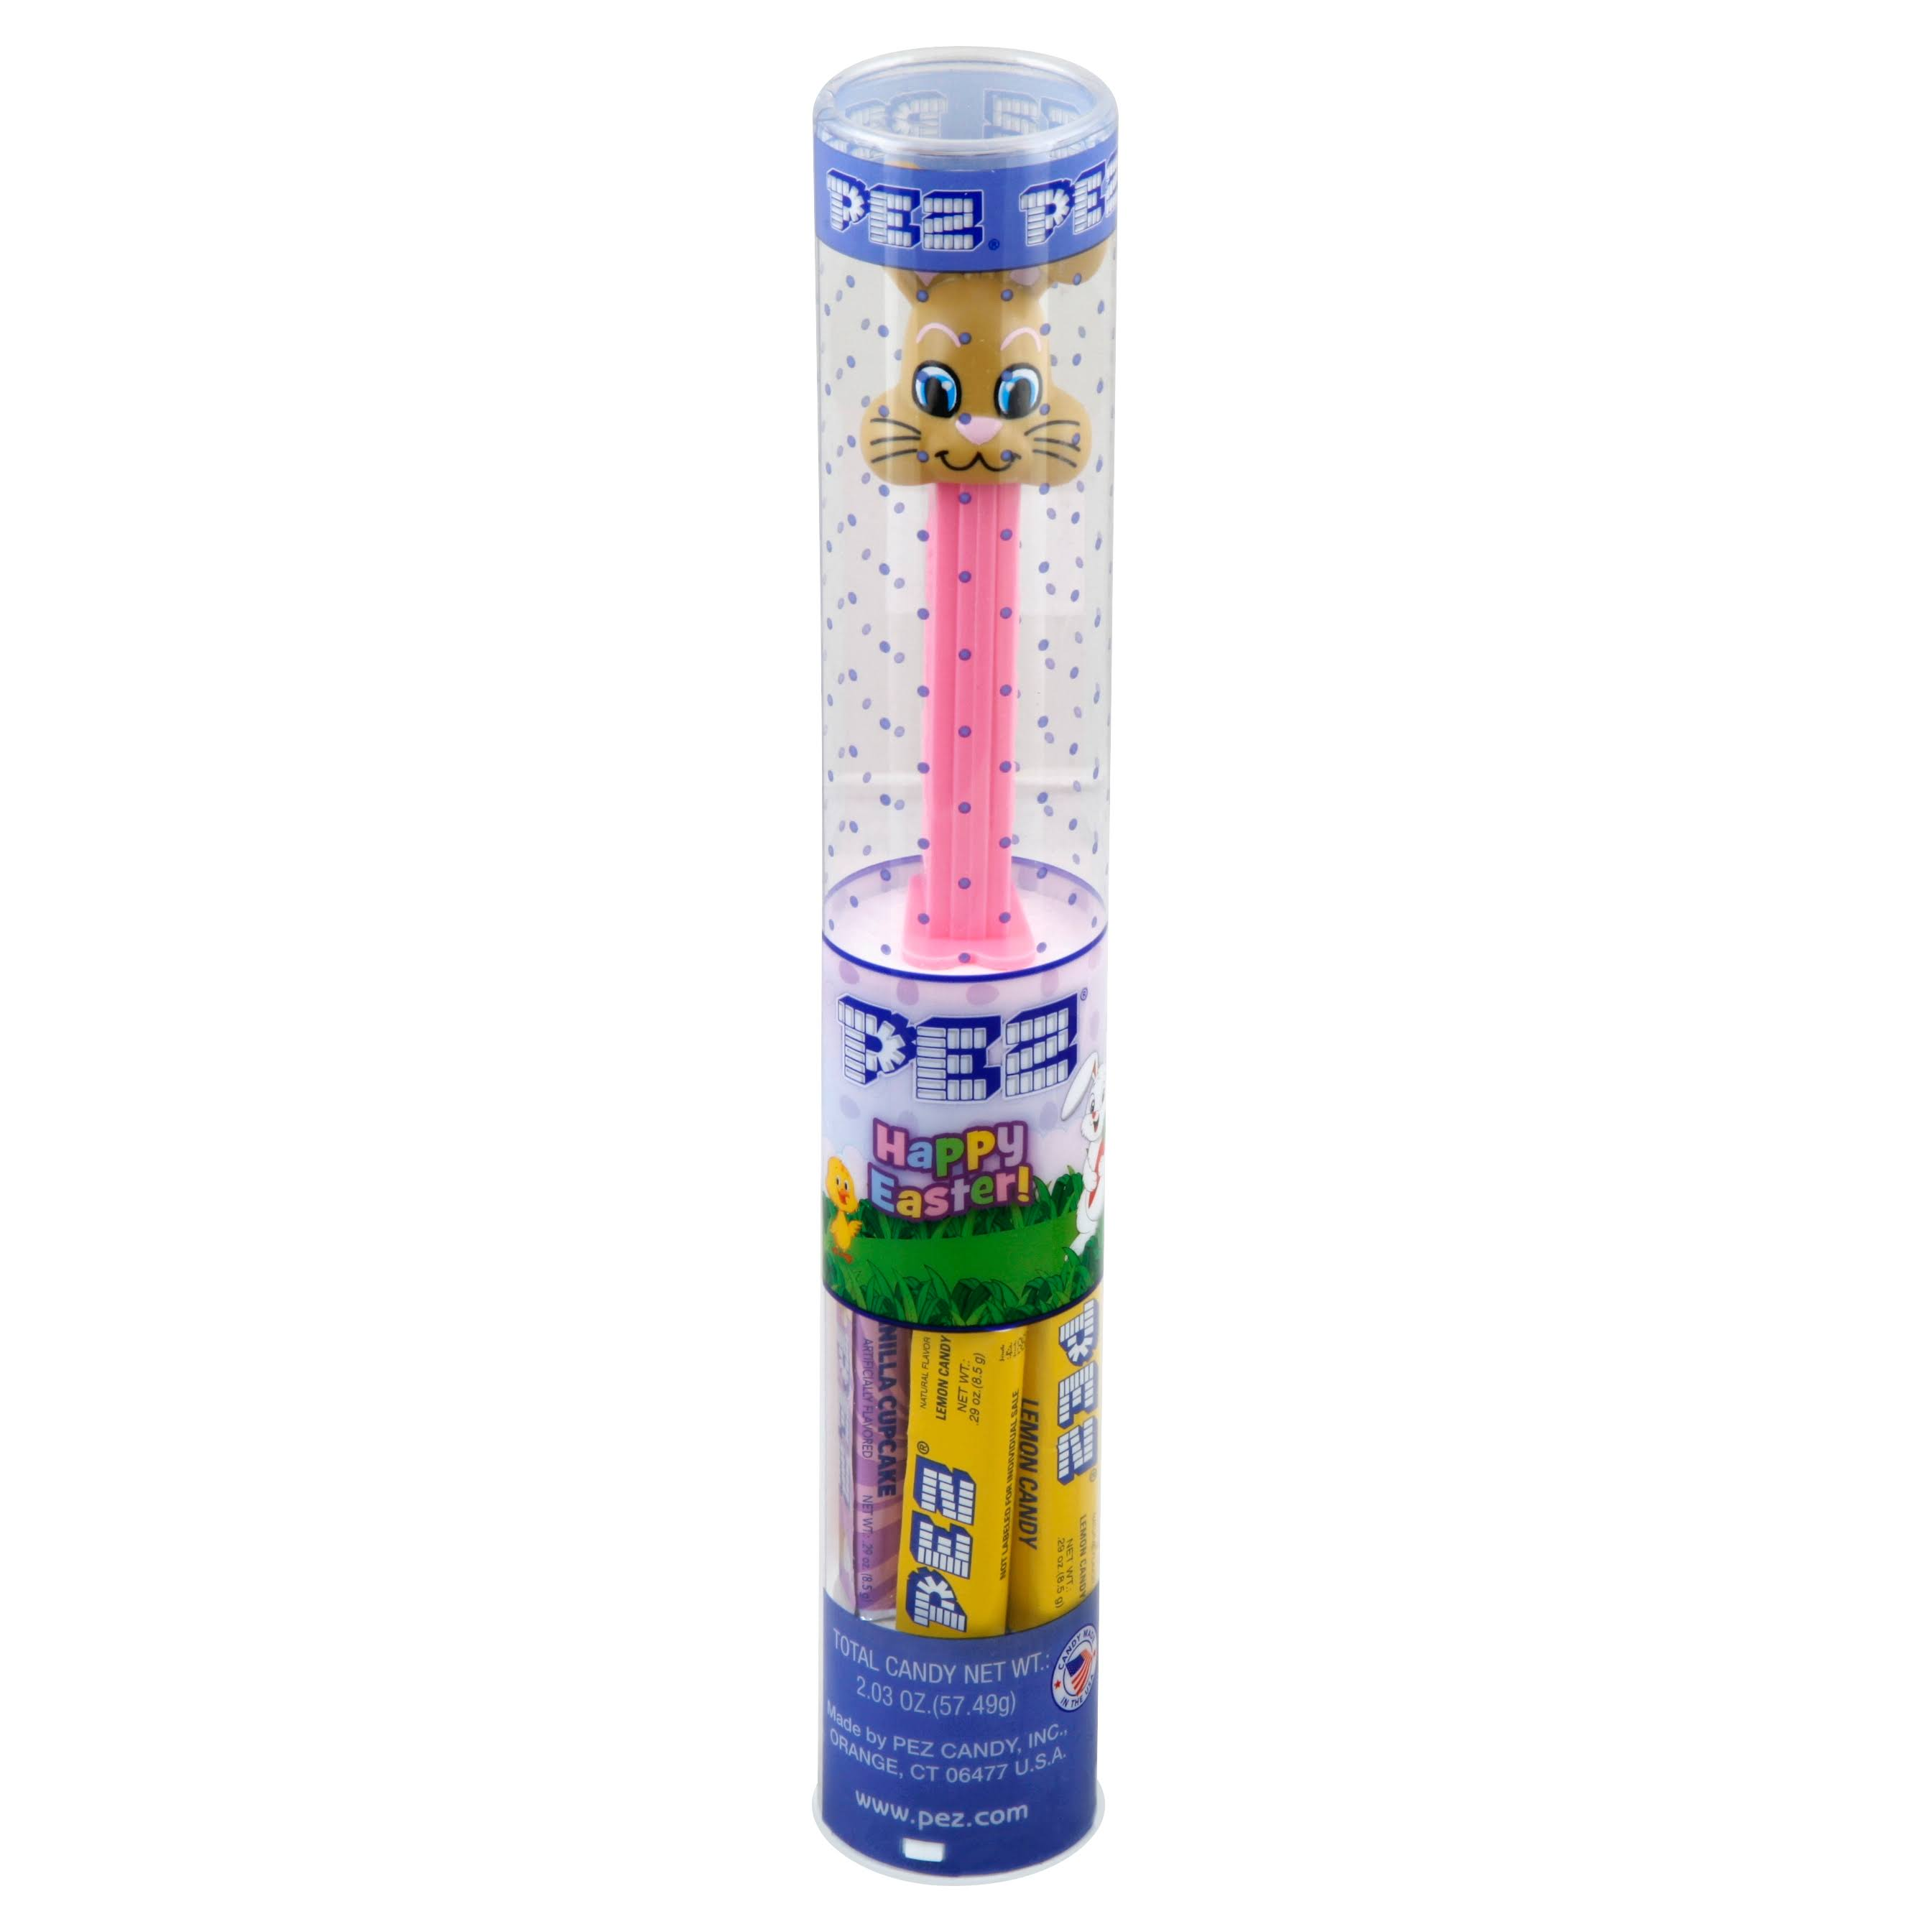 PEZ Easter Bunny Candy Dispenser - 2.03oz